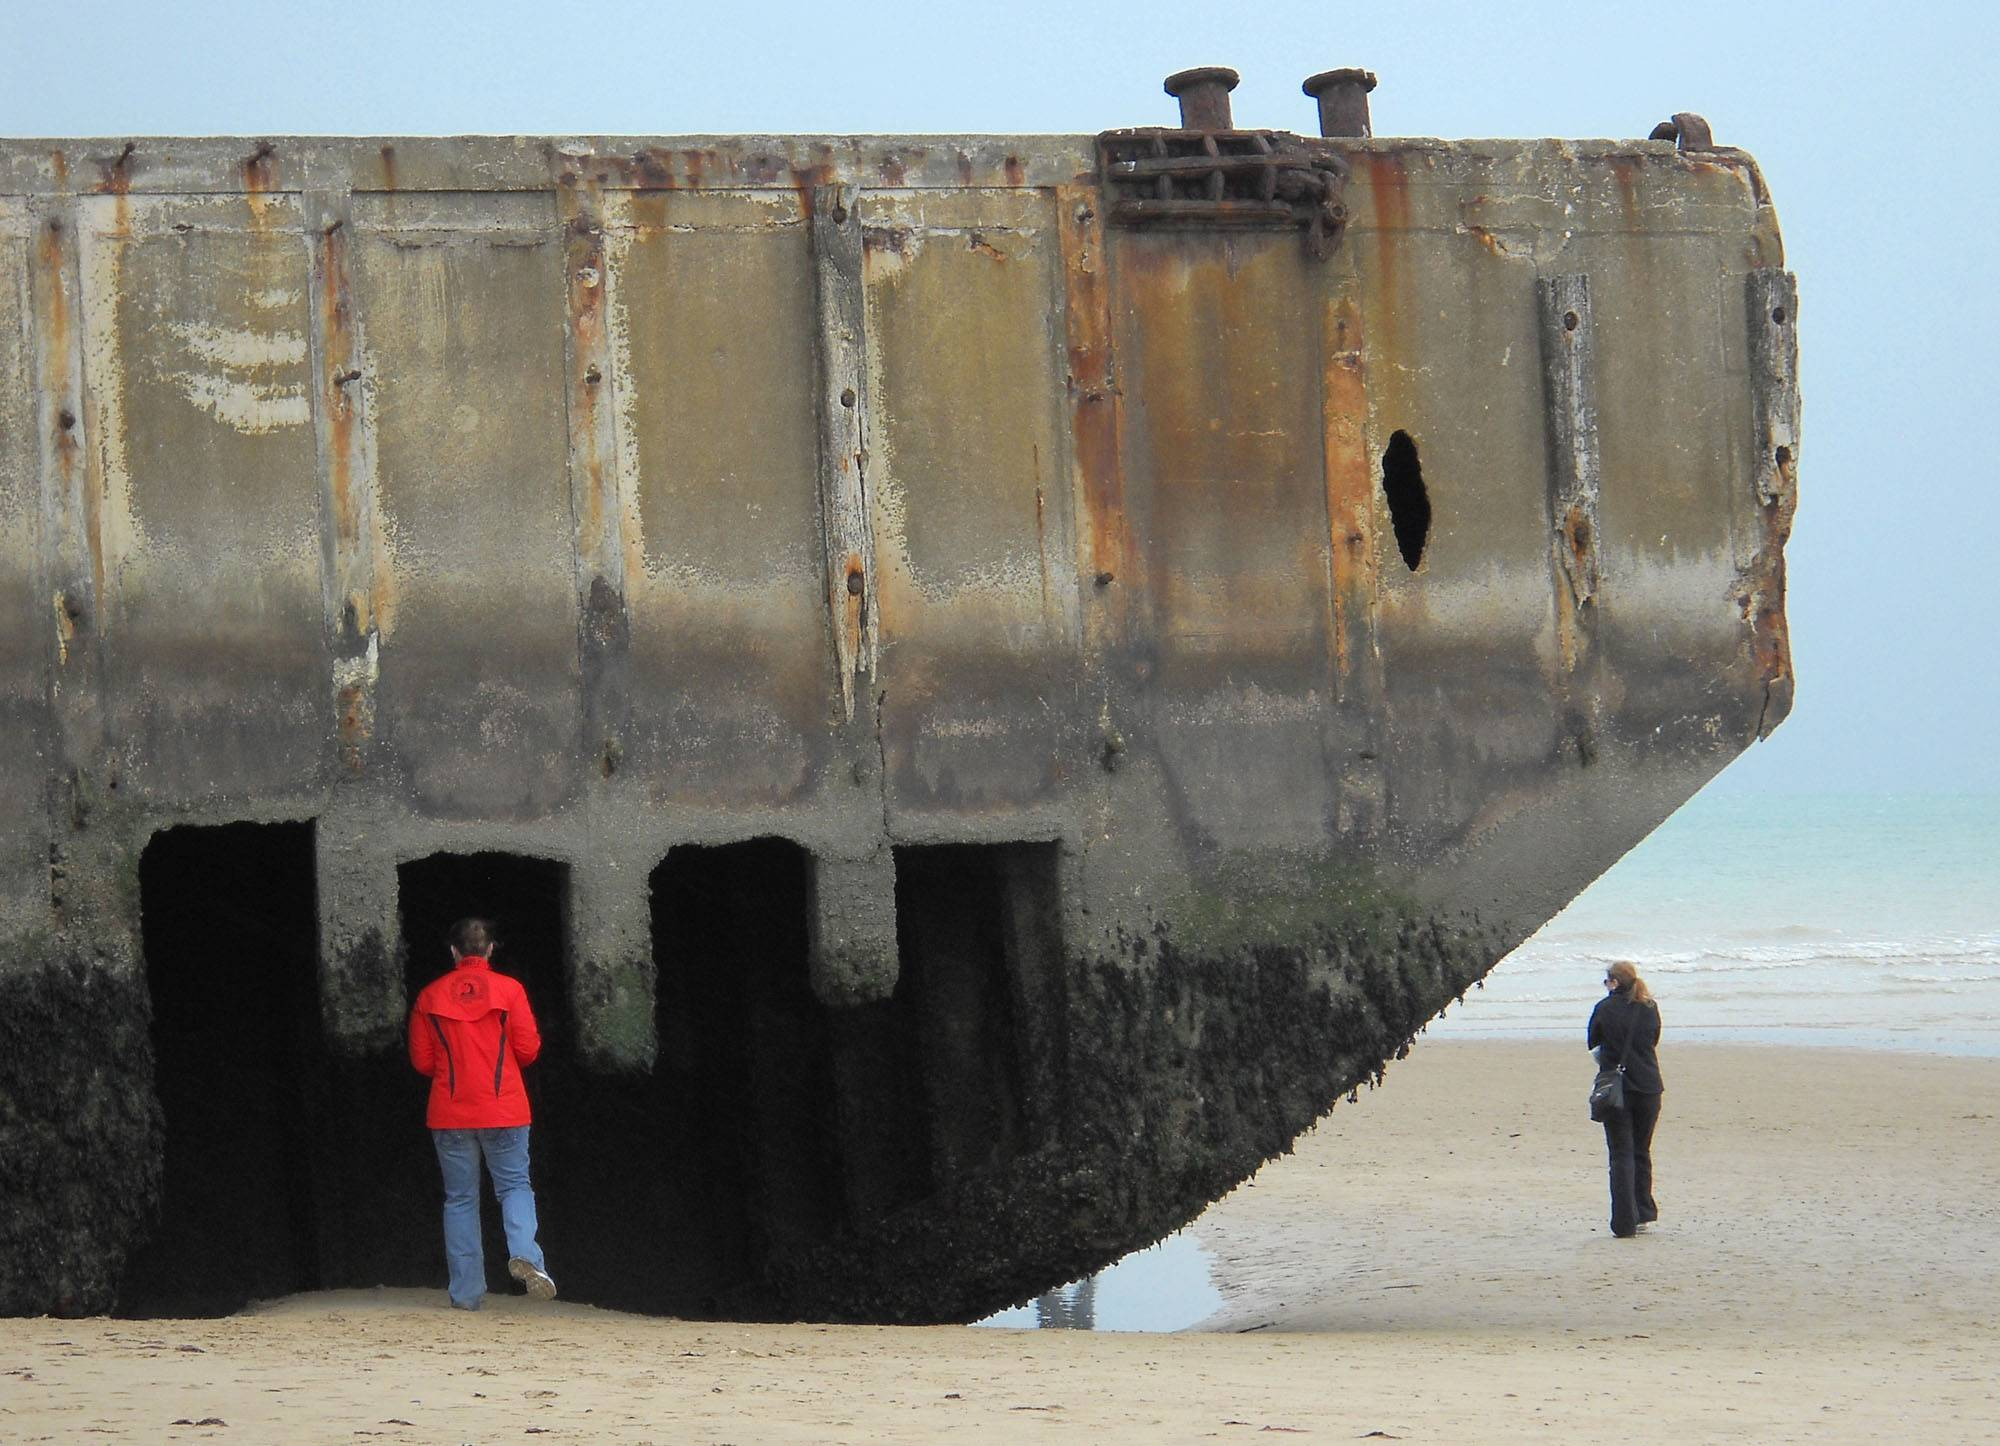 A visitor inspects the remains of an artificial harbor used by Allied forces during World War II on the sand at Arromanches, France. Arromanches is one of several beaches on the coast of Normandy likely to see an influx of tourists for the 70th anniversary of D-Day on June 6, 2014.